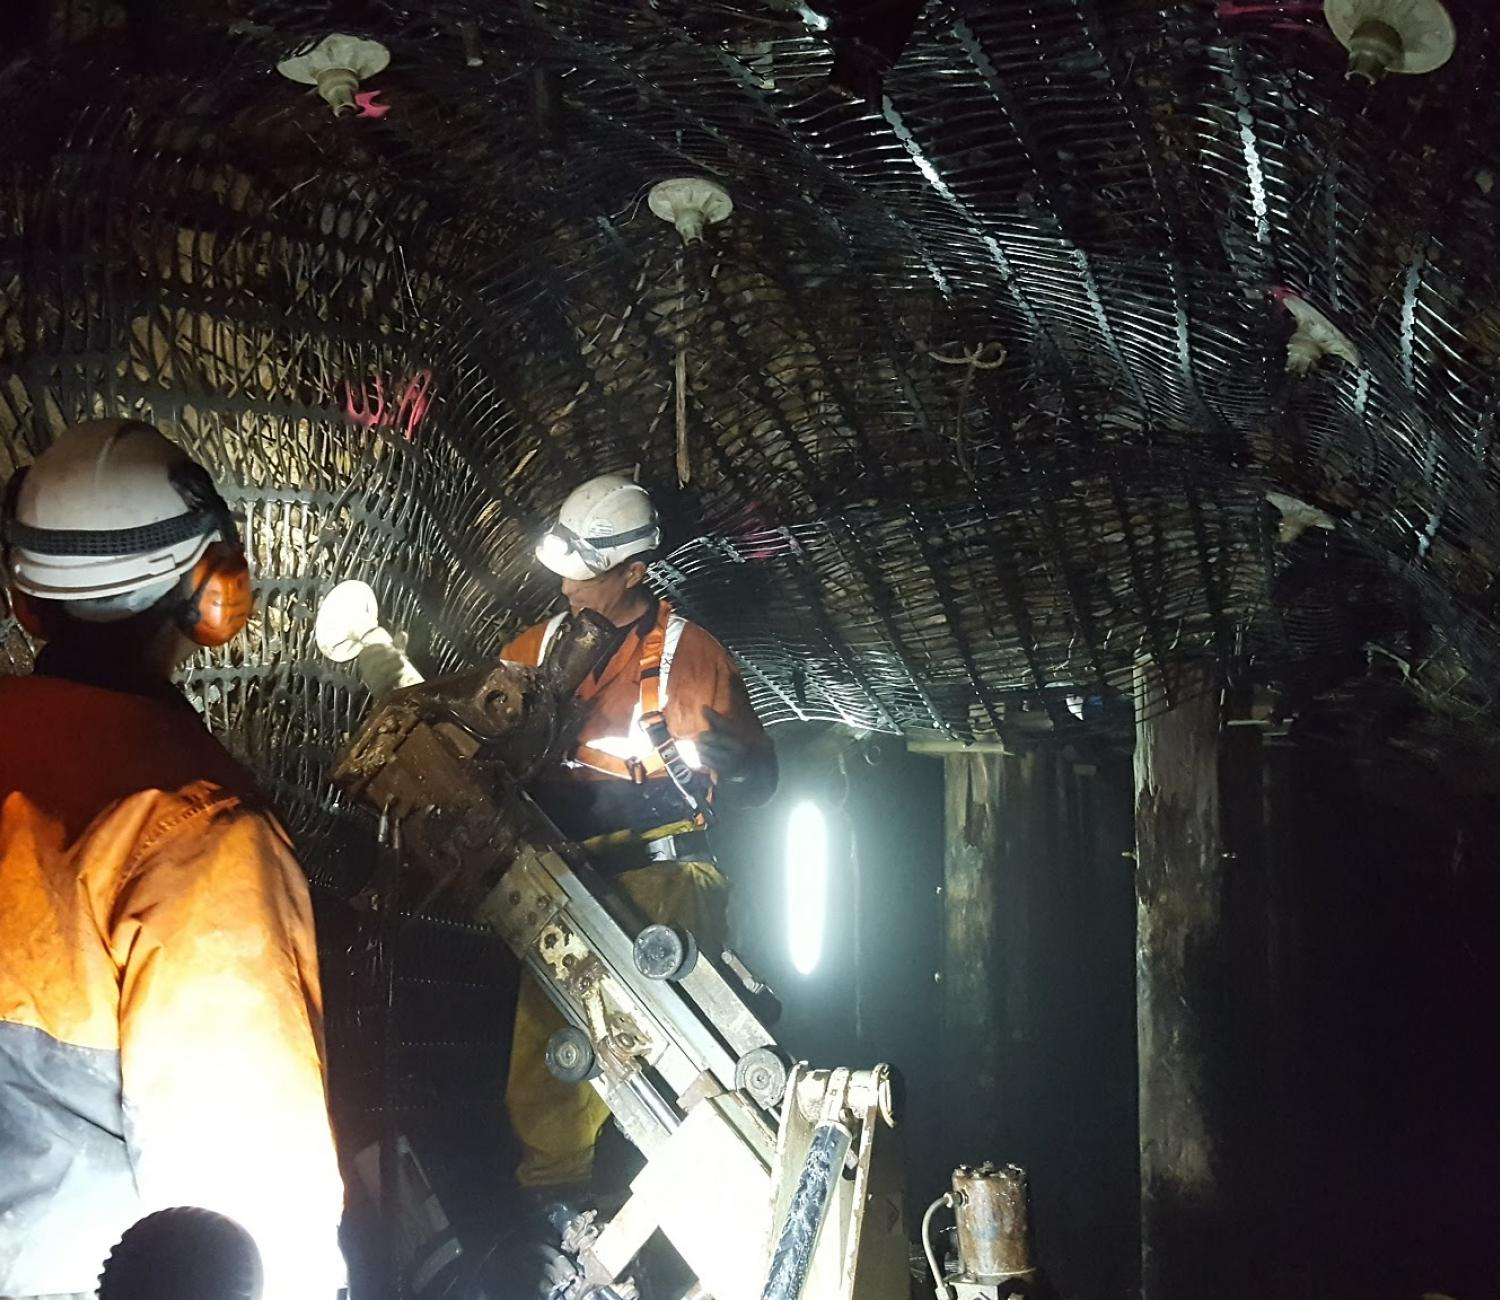 confined space conditions